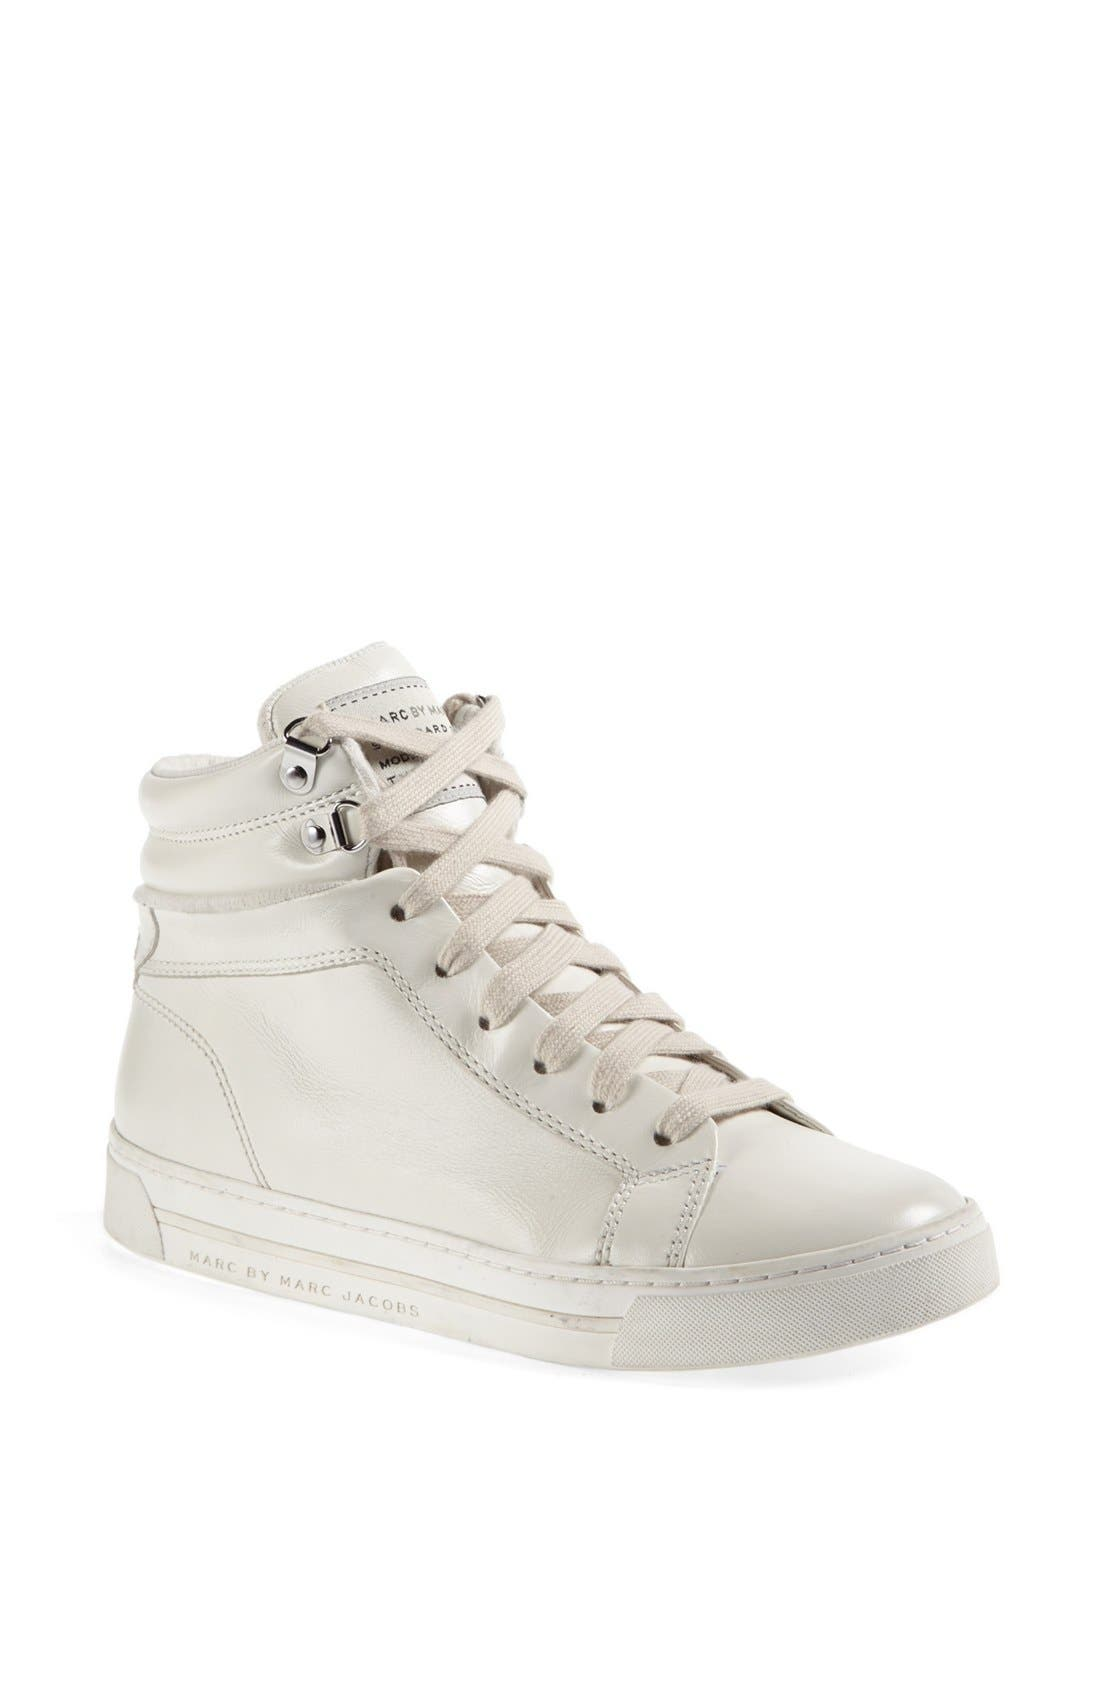 Alternate Image 1 Selected - MARC BY MARC JACOBS 'Cute Kicks' Sneaker (Online Only)